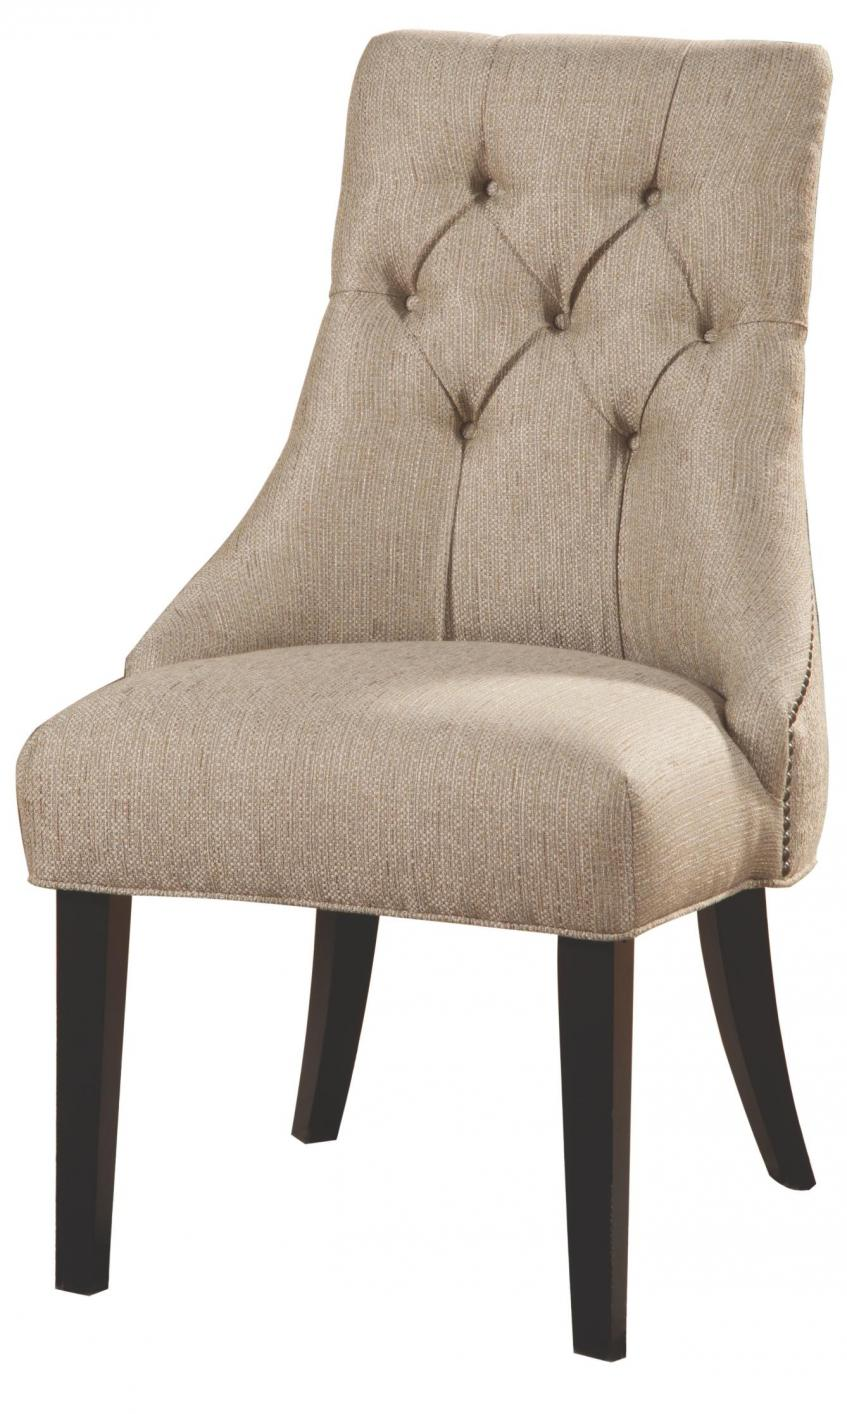 Custom Beige Accent Chair Gallery